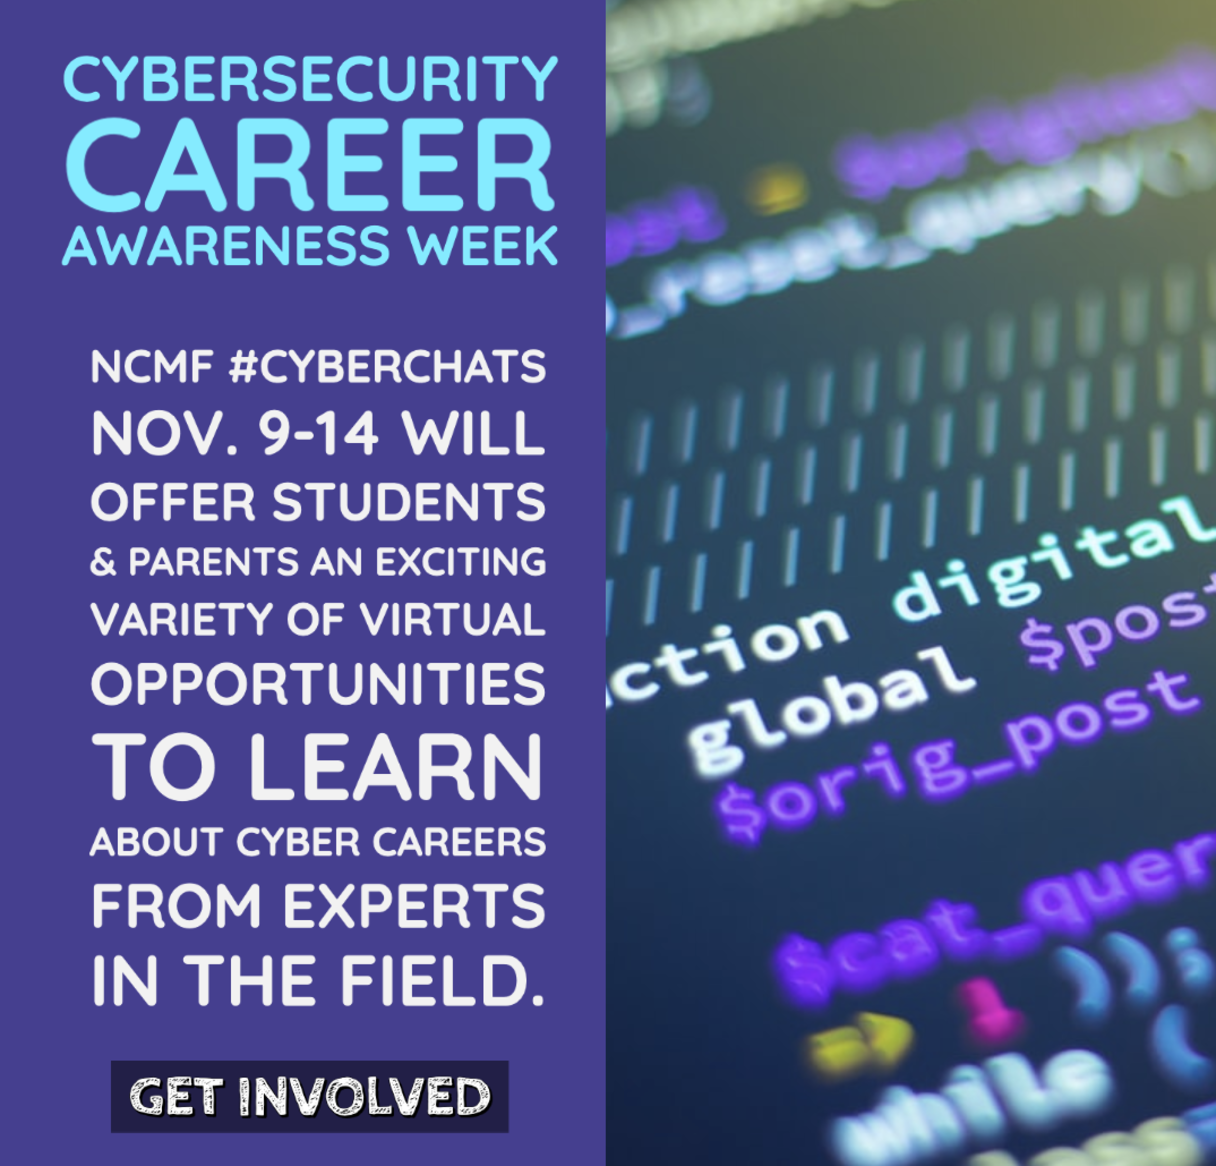 Join us for Cybersecurity Career Week #CyberChats - Nov. 9-13